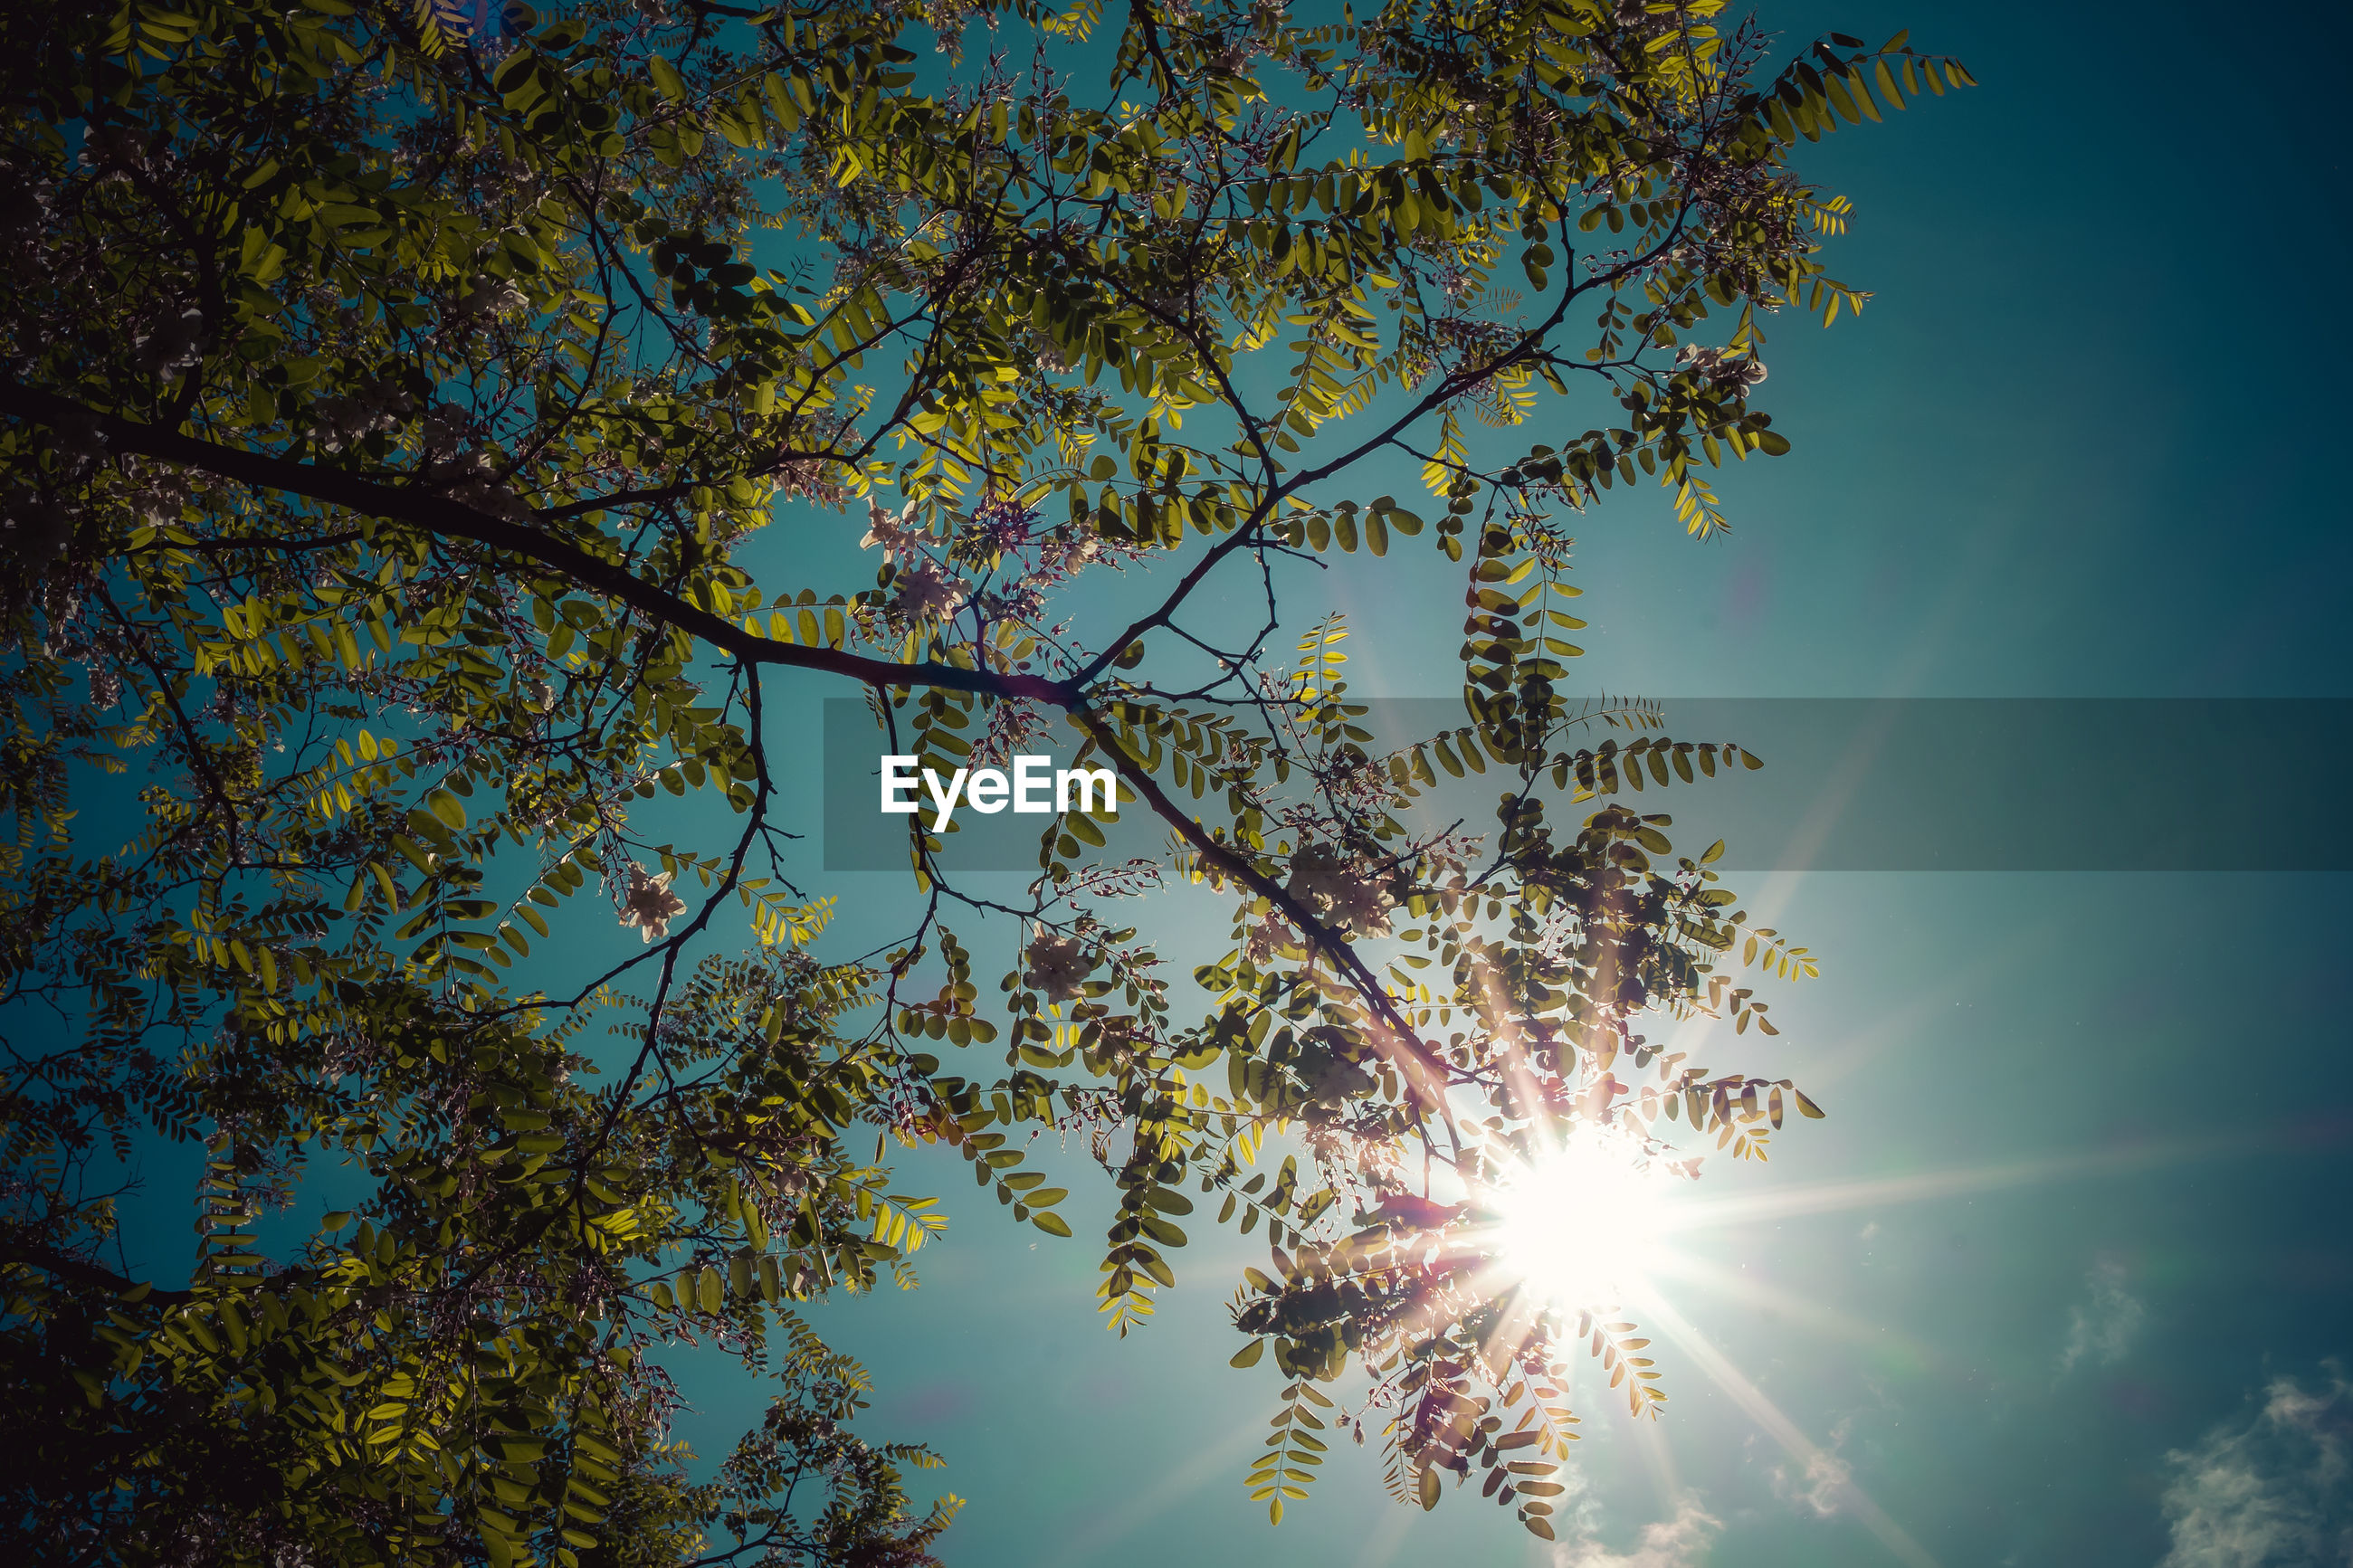 tree, sky, plant, sunlight, nature, beauty in nature, low angle view, sun, sunbeam, growth, tranquility, no people, lens flare, leaf, branch, blue, outdoors, reflection, scenics - nature, day, light, cloud, back lit, tranquil scene, plant part, flower, idyllic, sunny